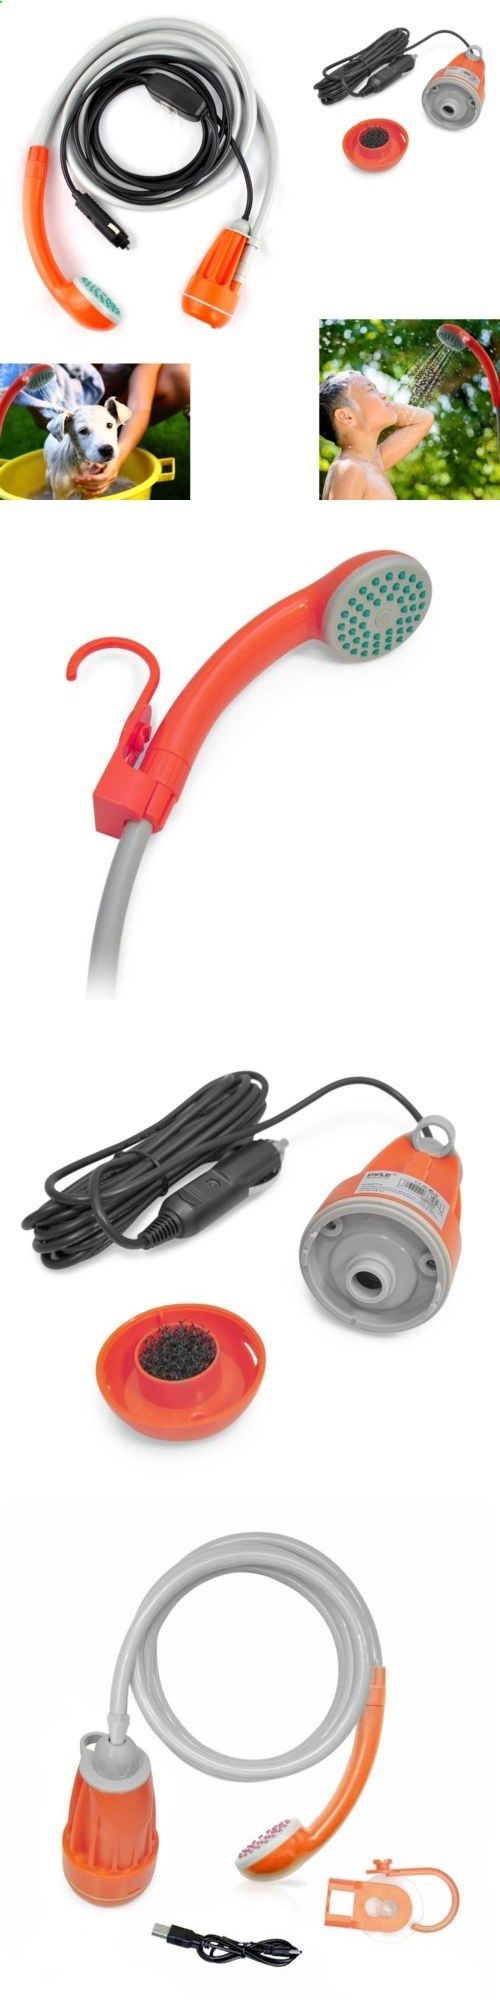 Portable Showers and Accessories 181396: Portable Camping Shower 12V Electric Outdoor Hiking Travel Water Pump Car Plug -> BUY IT NOW ONLY: $50.9 on eBay!